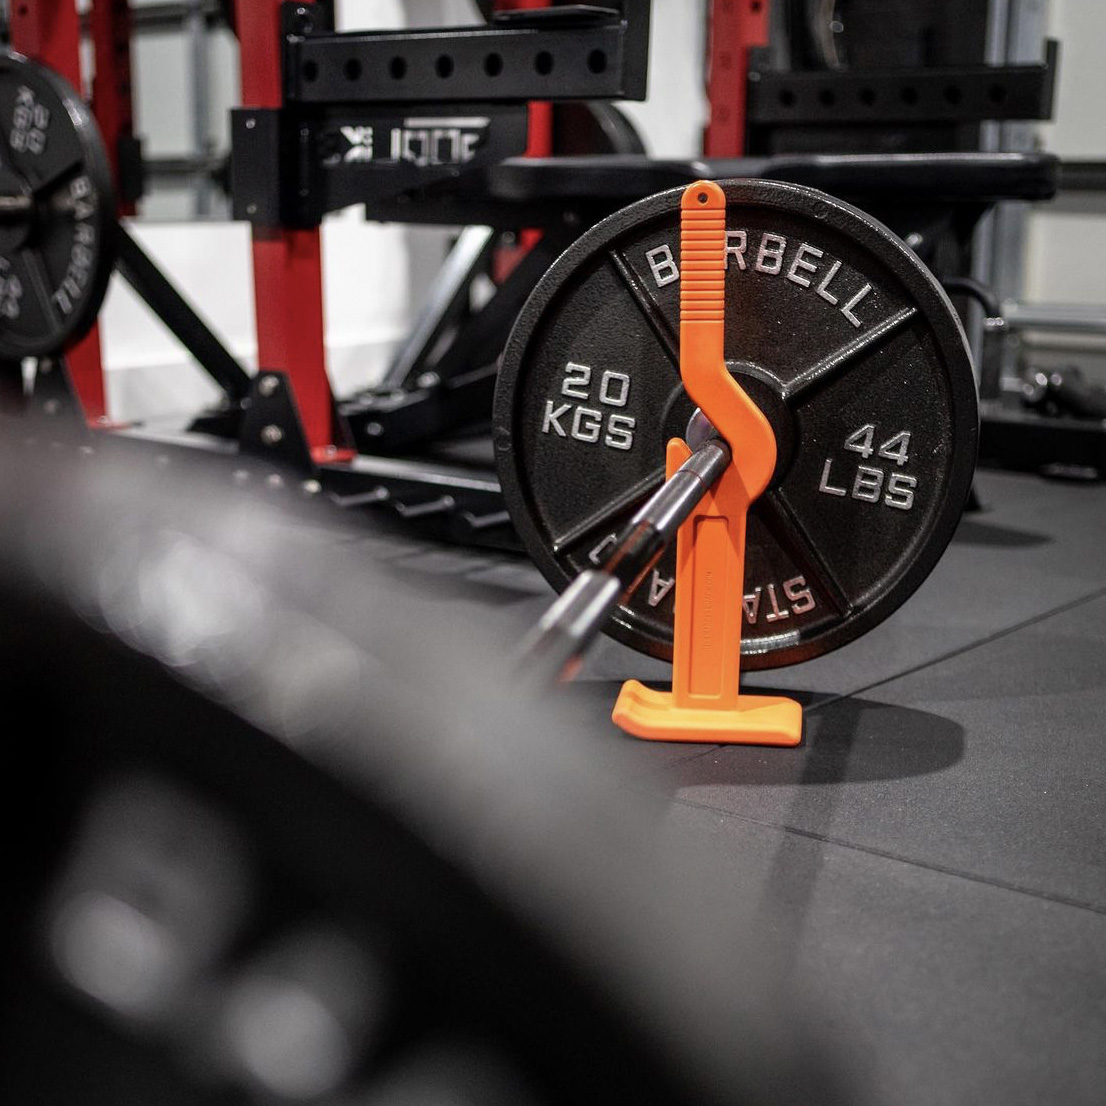 The Barbell Jack Launches Online Store to Ship Mini Barbell Jacks and Portable Deadlift Jacks in Australia and US